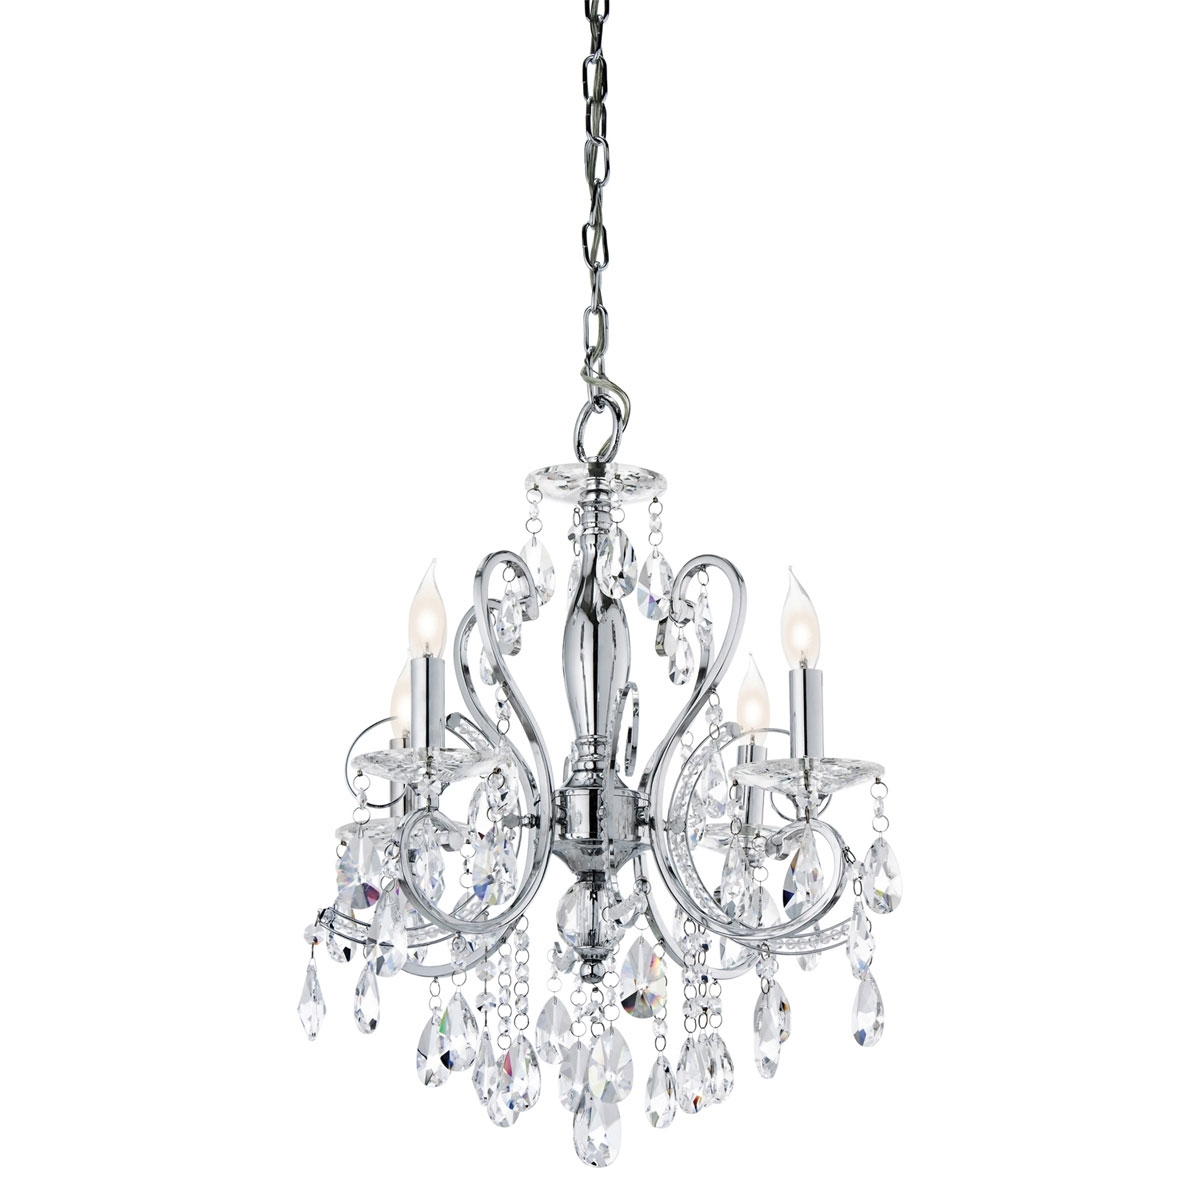 Ultimate Mini Crystal Chandeliers About Modern Home Interior Design In Famous Small Chandeliers (View 8 of 20)